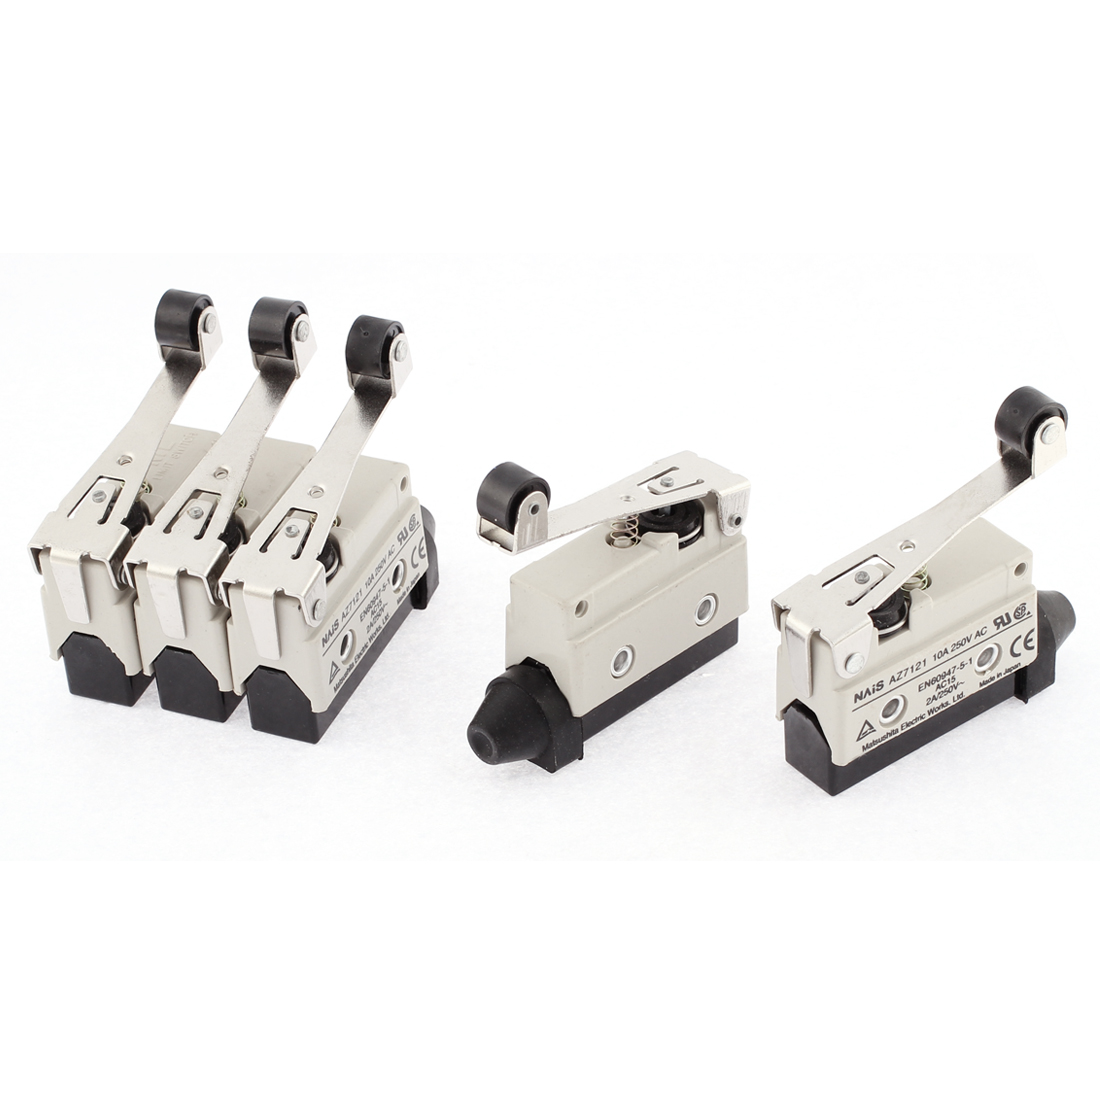 AC 250V 10A Momentary Hinge Roller Lever Limit Switch Replaces AZ7121 5 Pcs